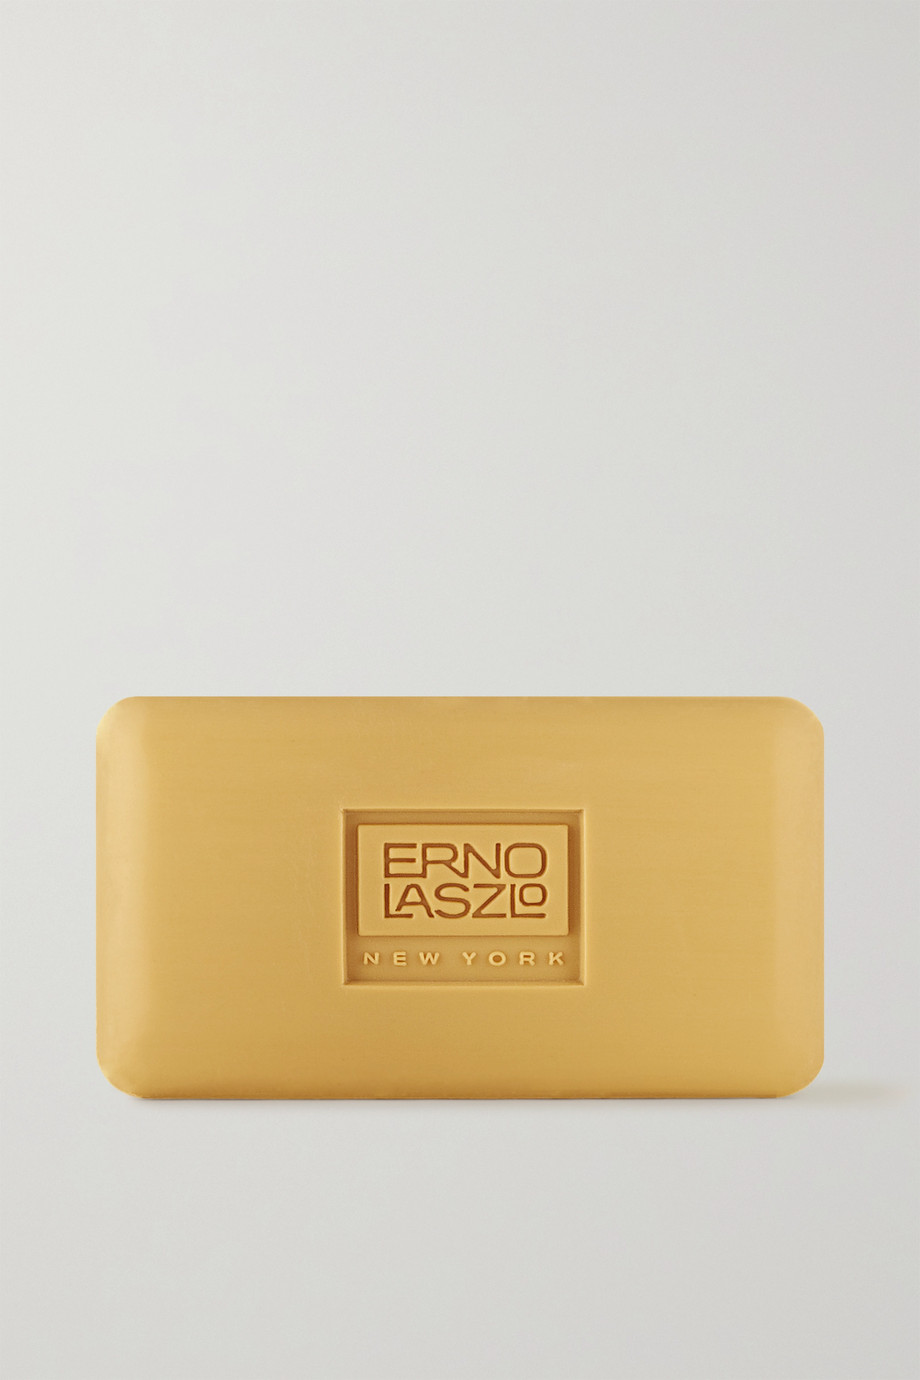 Phelityl Cleansing Bar, 150g, by Erno Laszlo